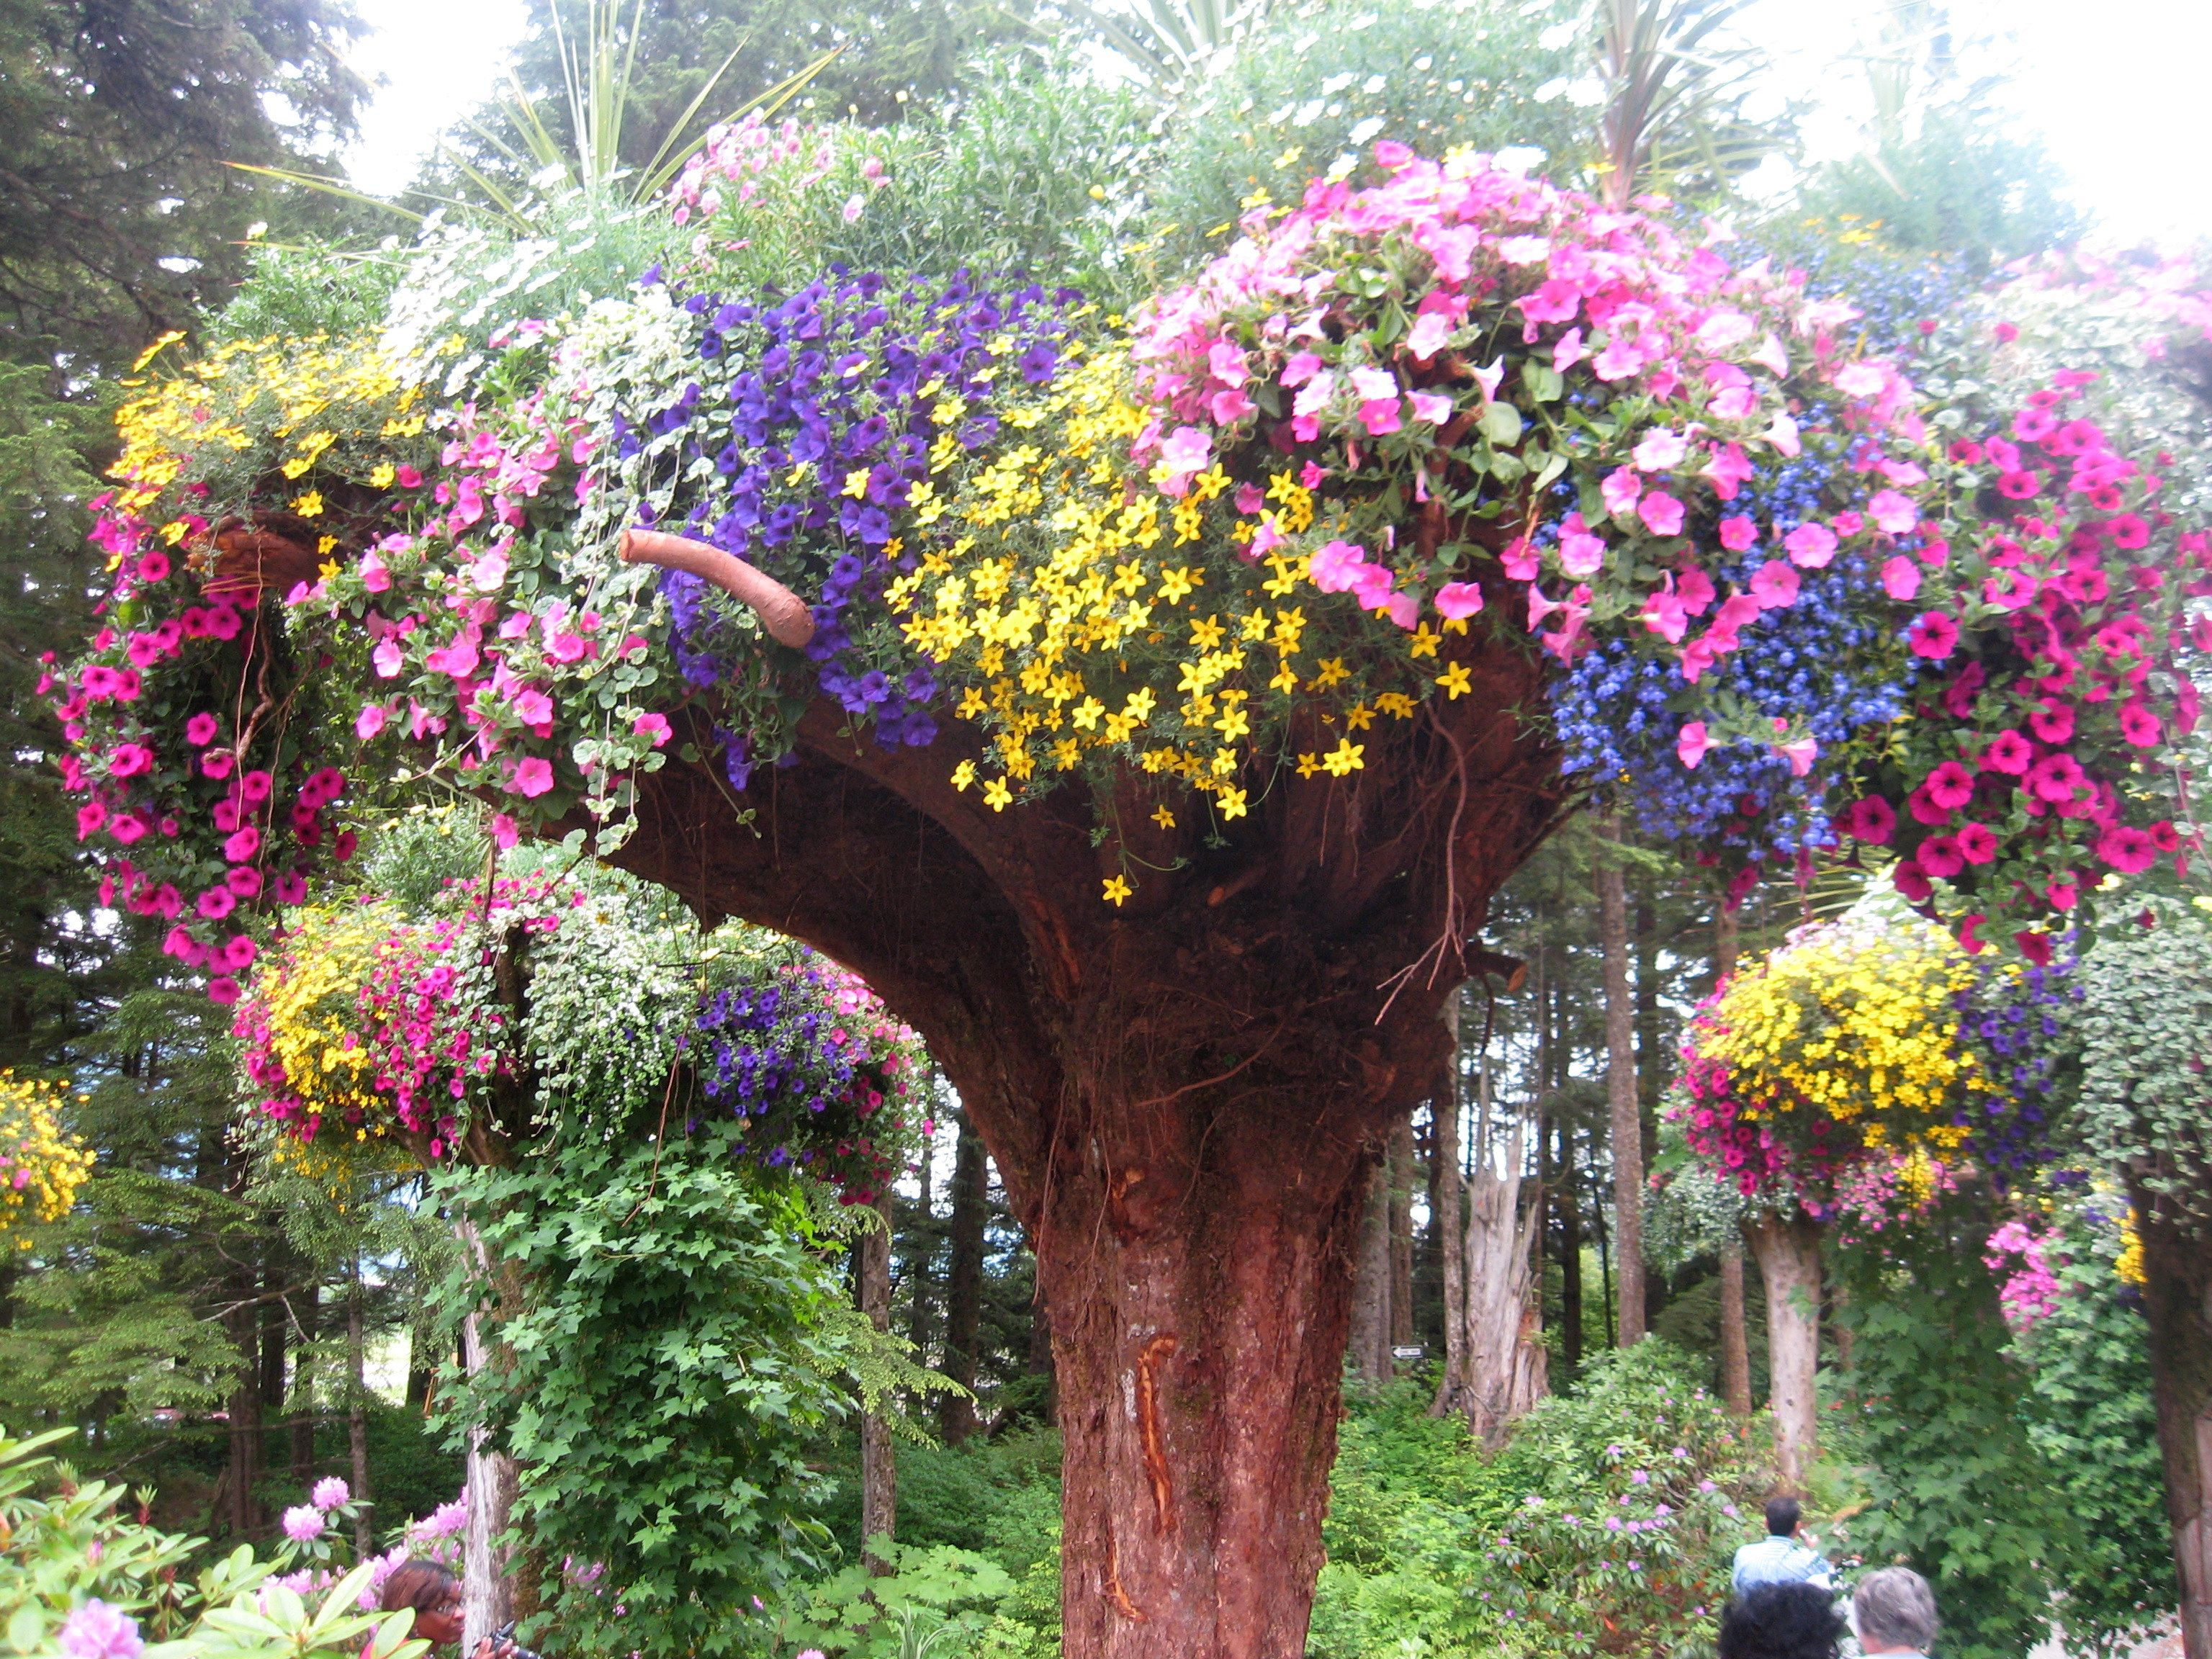 upside down trees with flowers planted in the roots. kim..dead